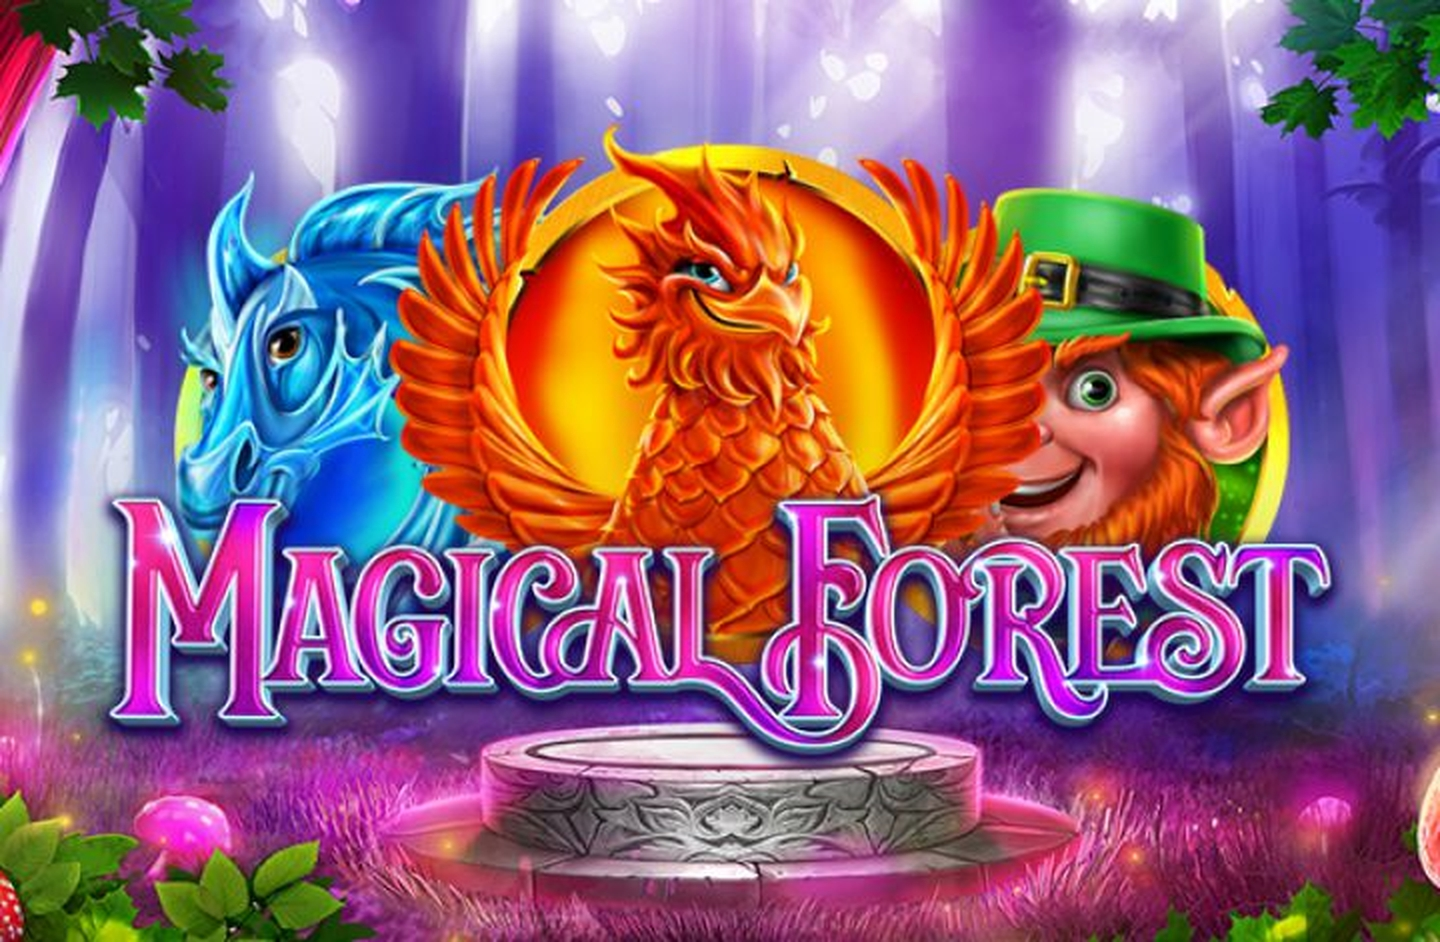 Magical Forest (StakeLogic) Online Slot Demo Game by Stakelogic